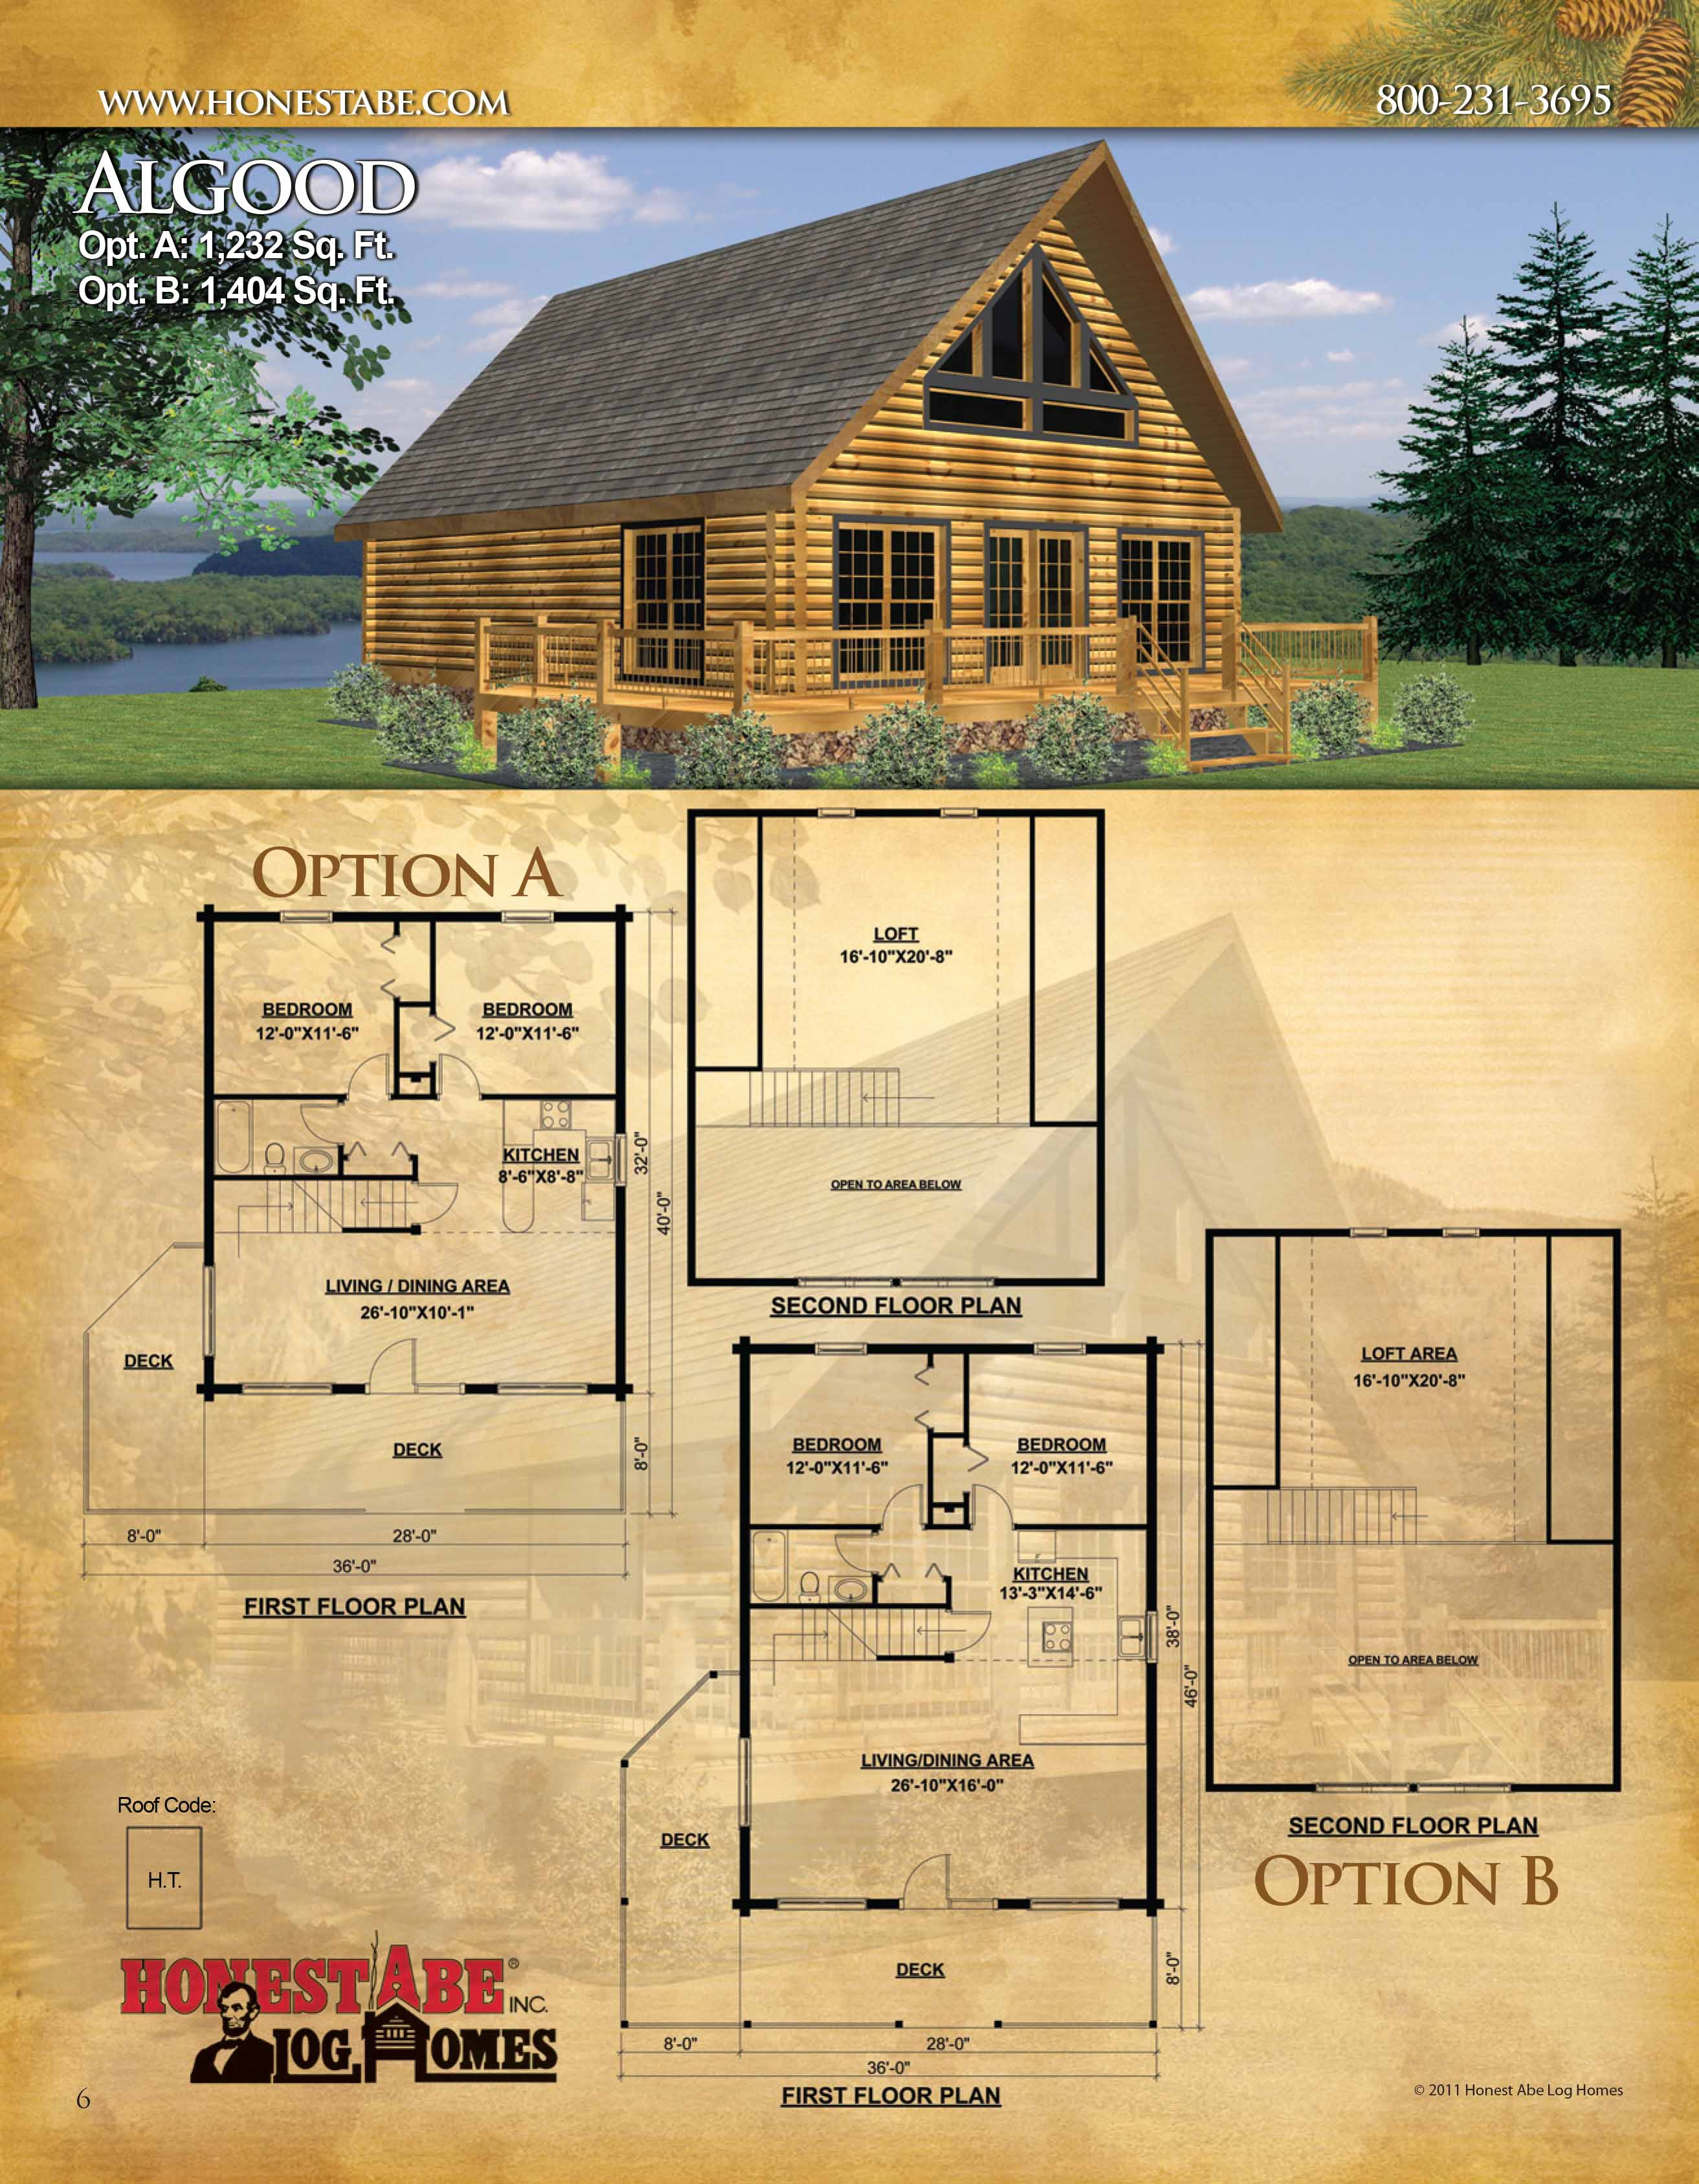 House Plans Wilmington Nc Awesome Browse Floor Plans for Our Custom Log Cabin Homes